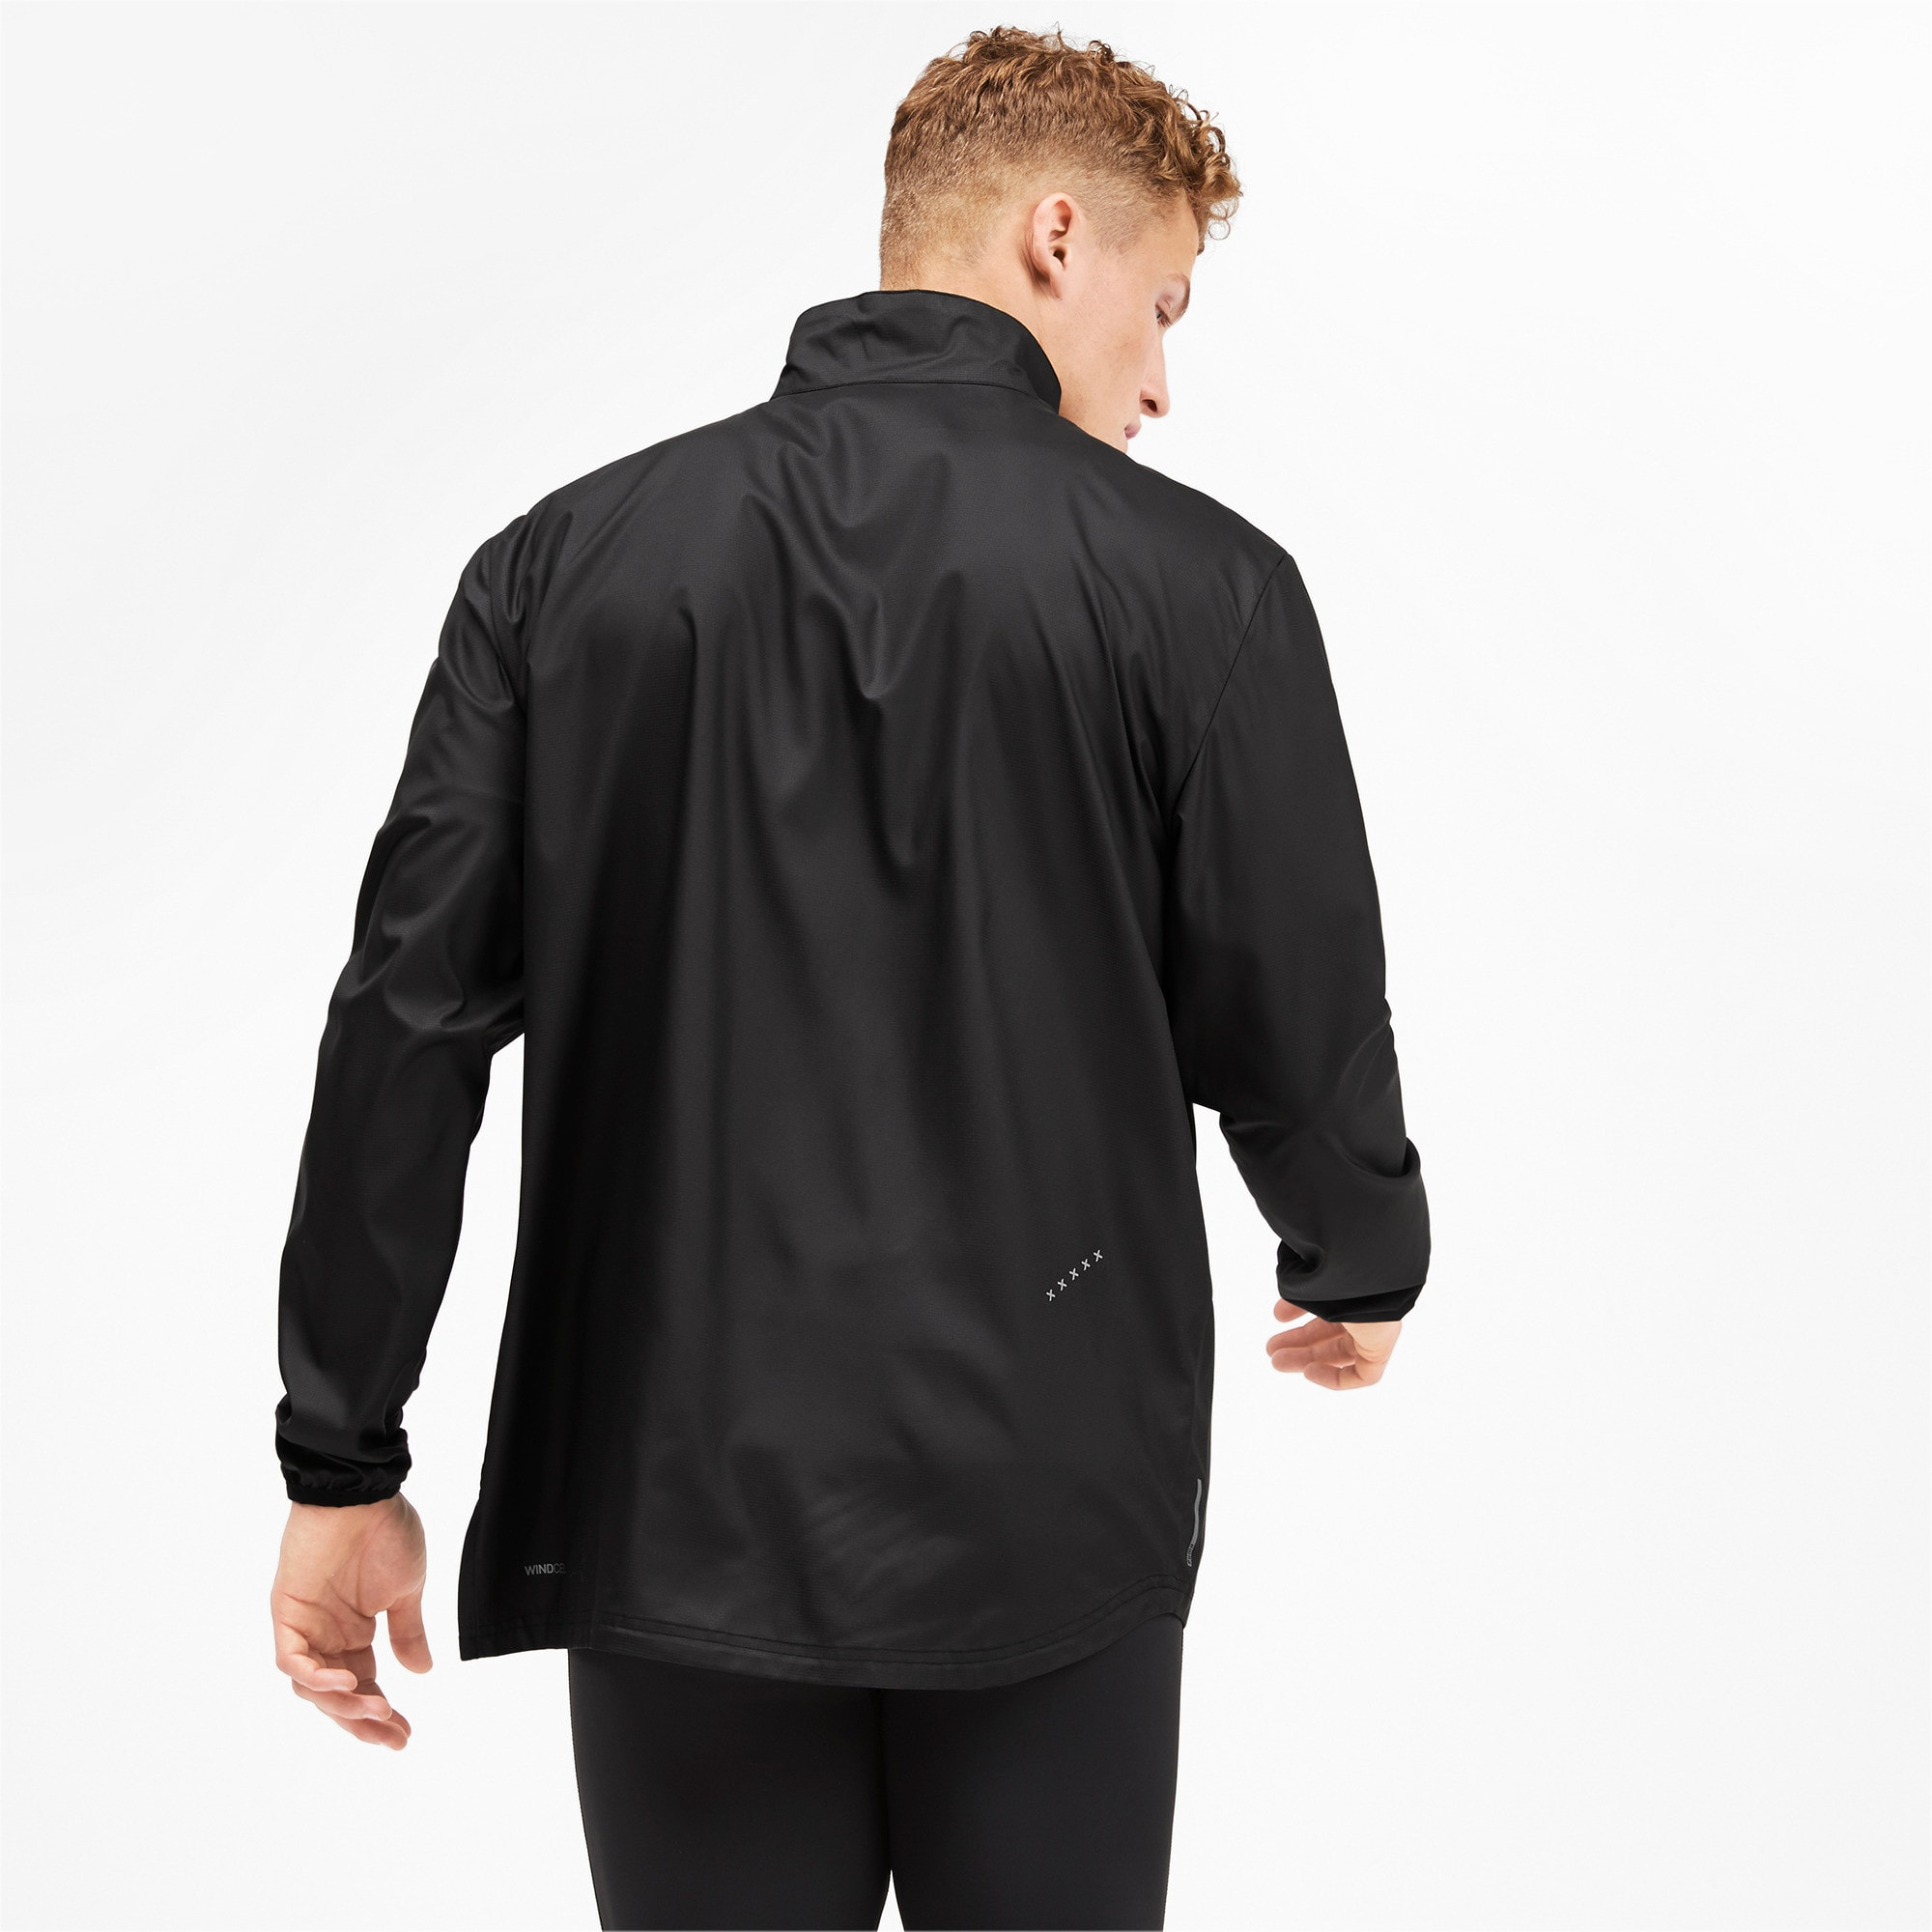 Thumbnail 2 of IGNITE Woven Men's Running Track Jacket, Puma Black-Puma Black, medium